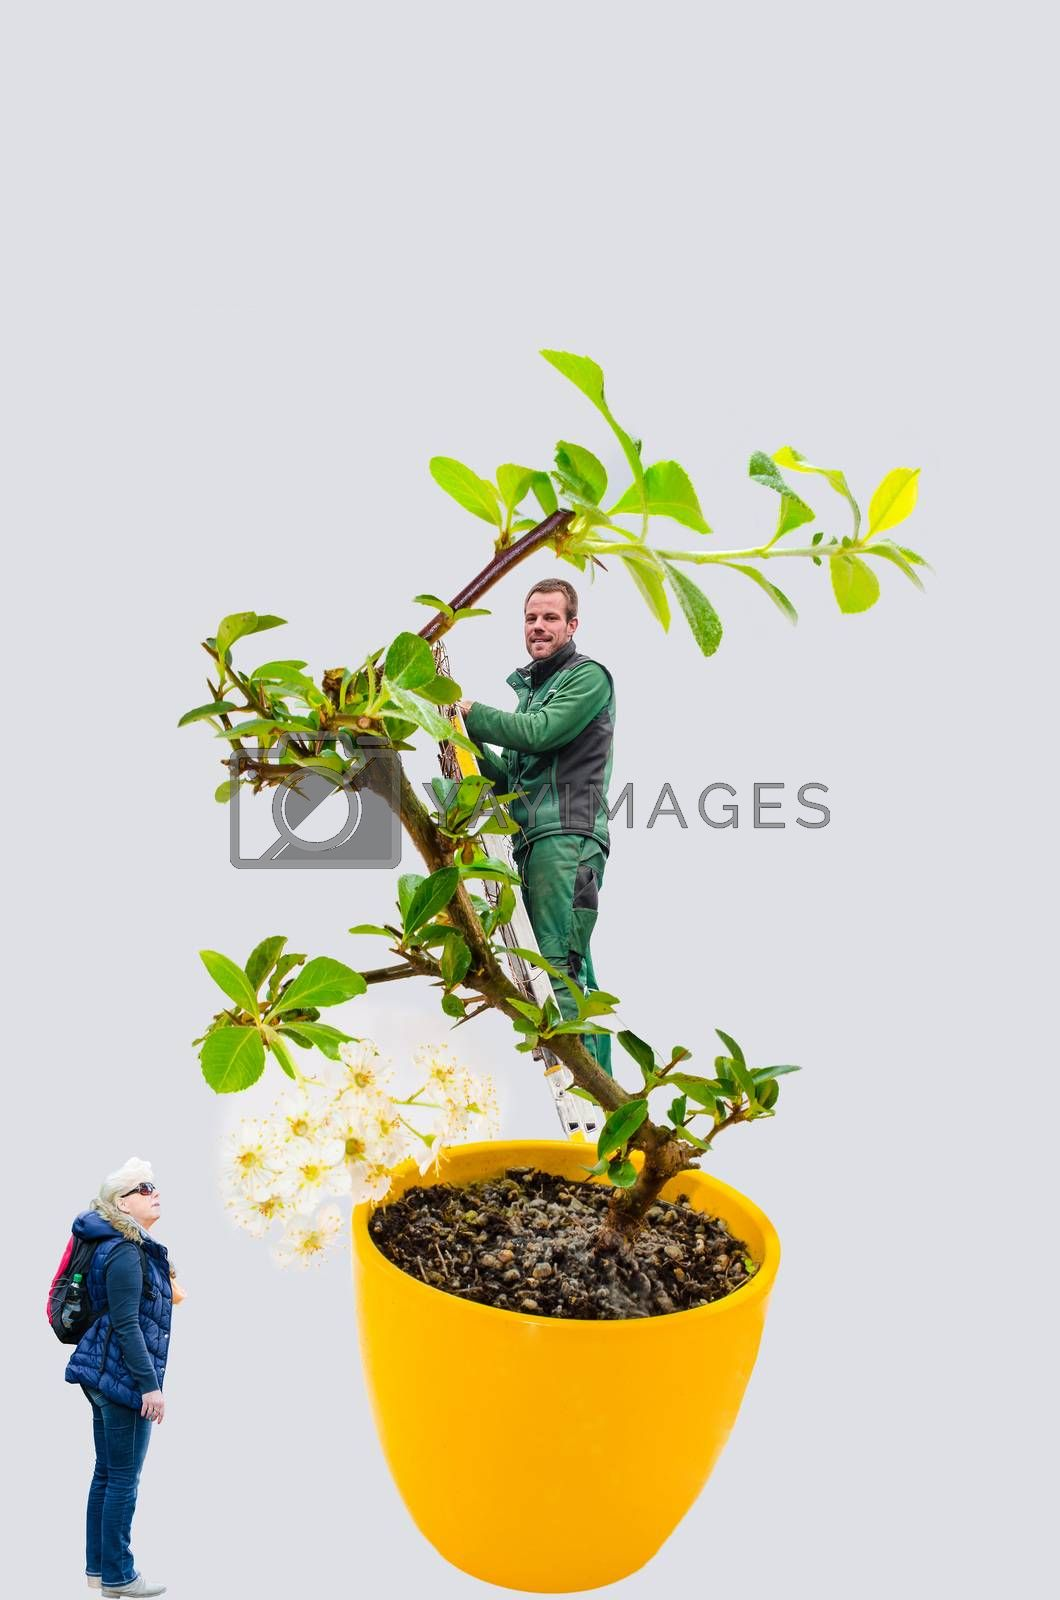 Royalty free image of Abstract, woman and man with bonsai tree by JFsPic